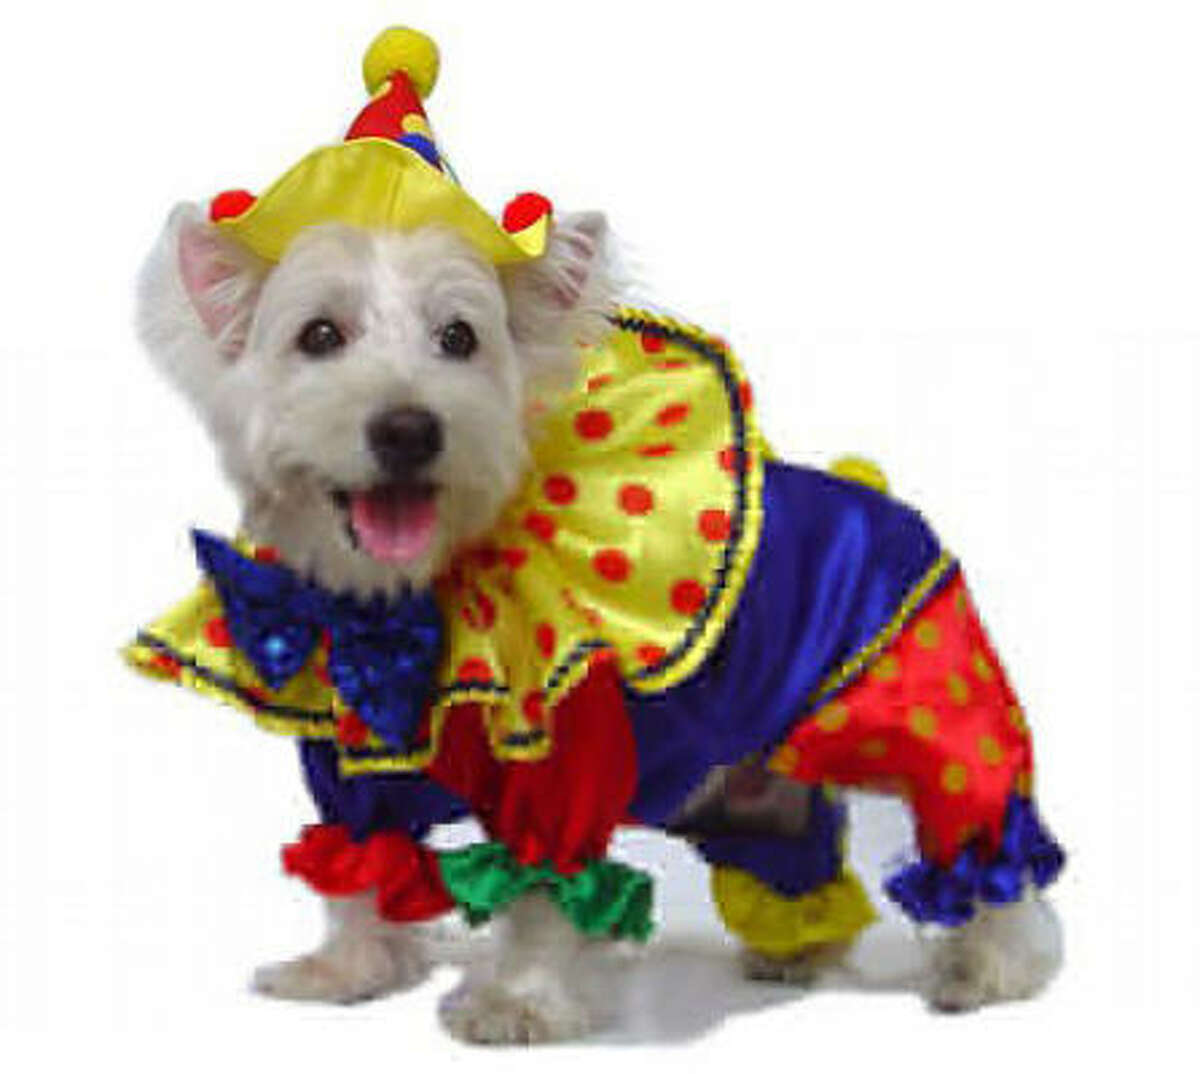 Shiny clown by Puppe Love. $28. Share your pics of dogs in costumes.